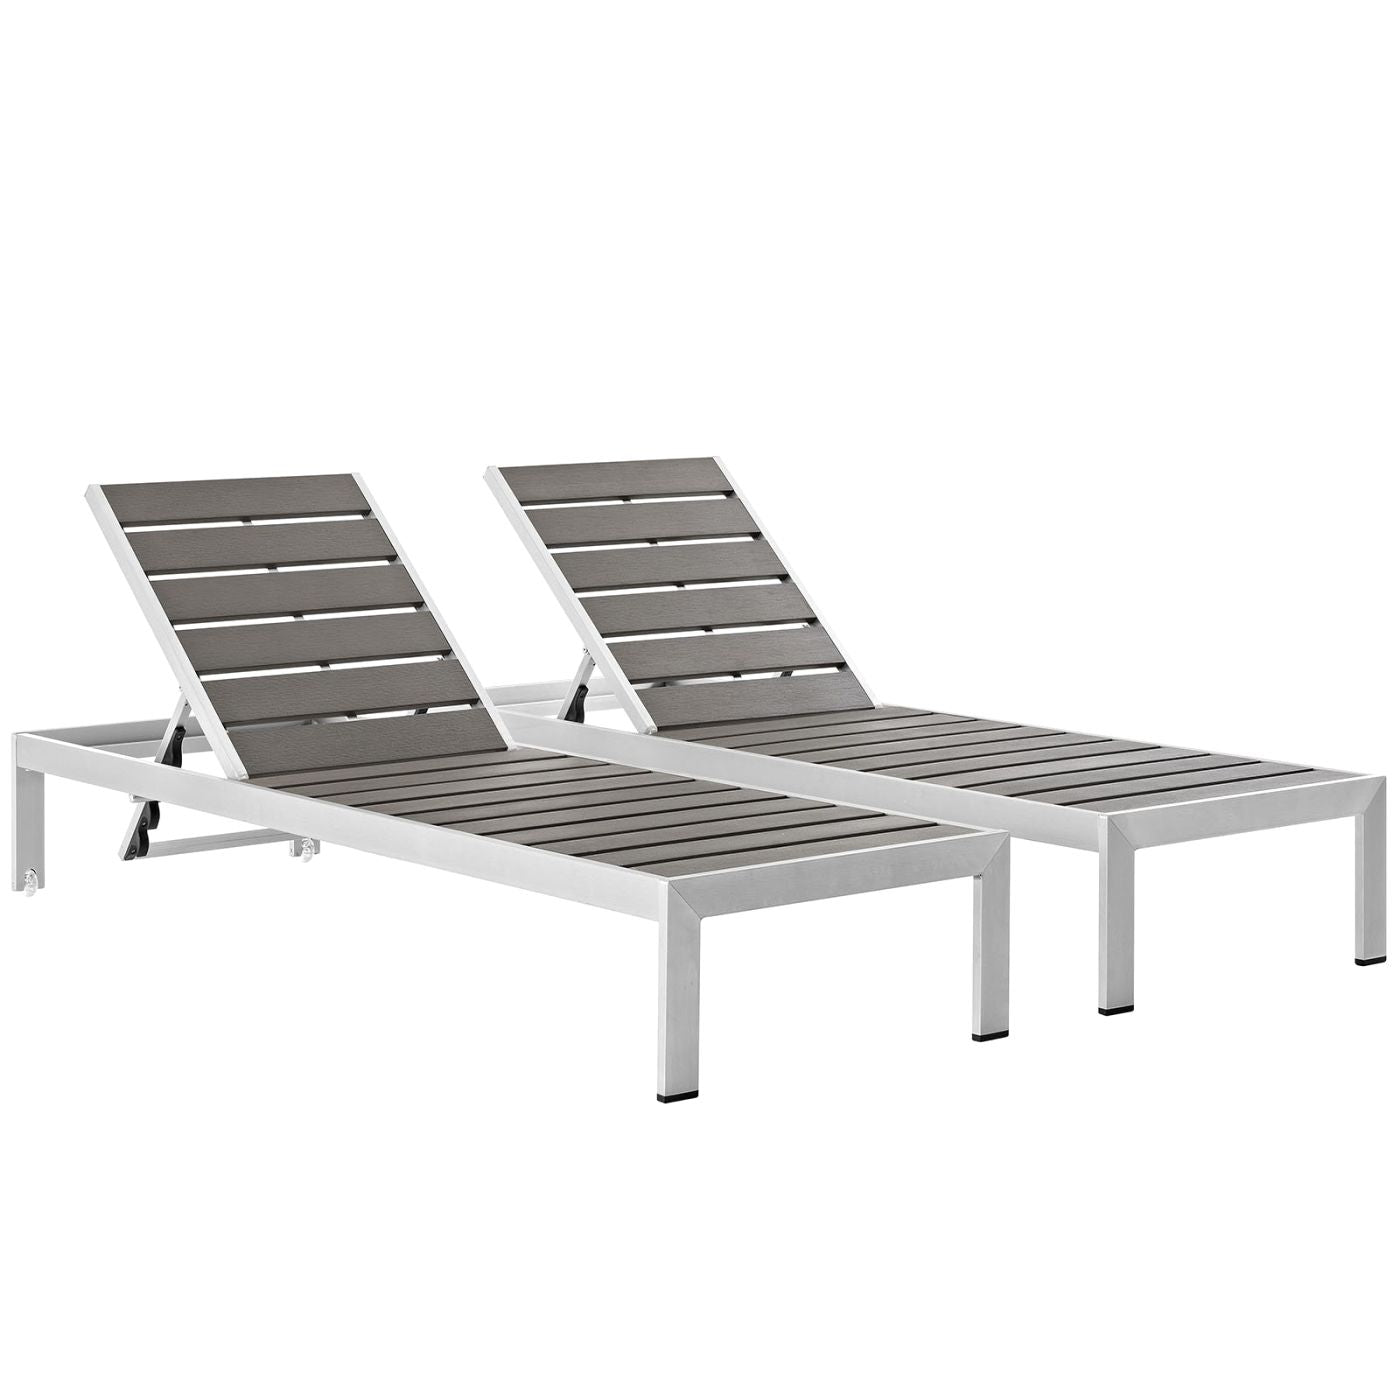 Fabulous Modway Outdoor Lounge Chairs On Sale Eei 2467 Slv Gry Set Shore Chaise Outdoor Patio Aluminumset Of 2 Only Only 626 05 At Contemporary Furniture Machost Co Dining Chair Design Ideas Machostcouk